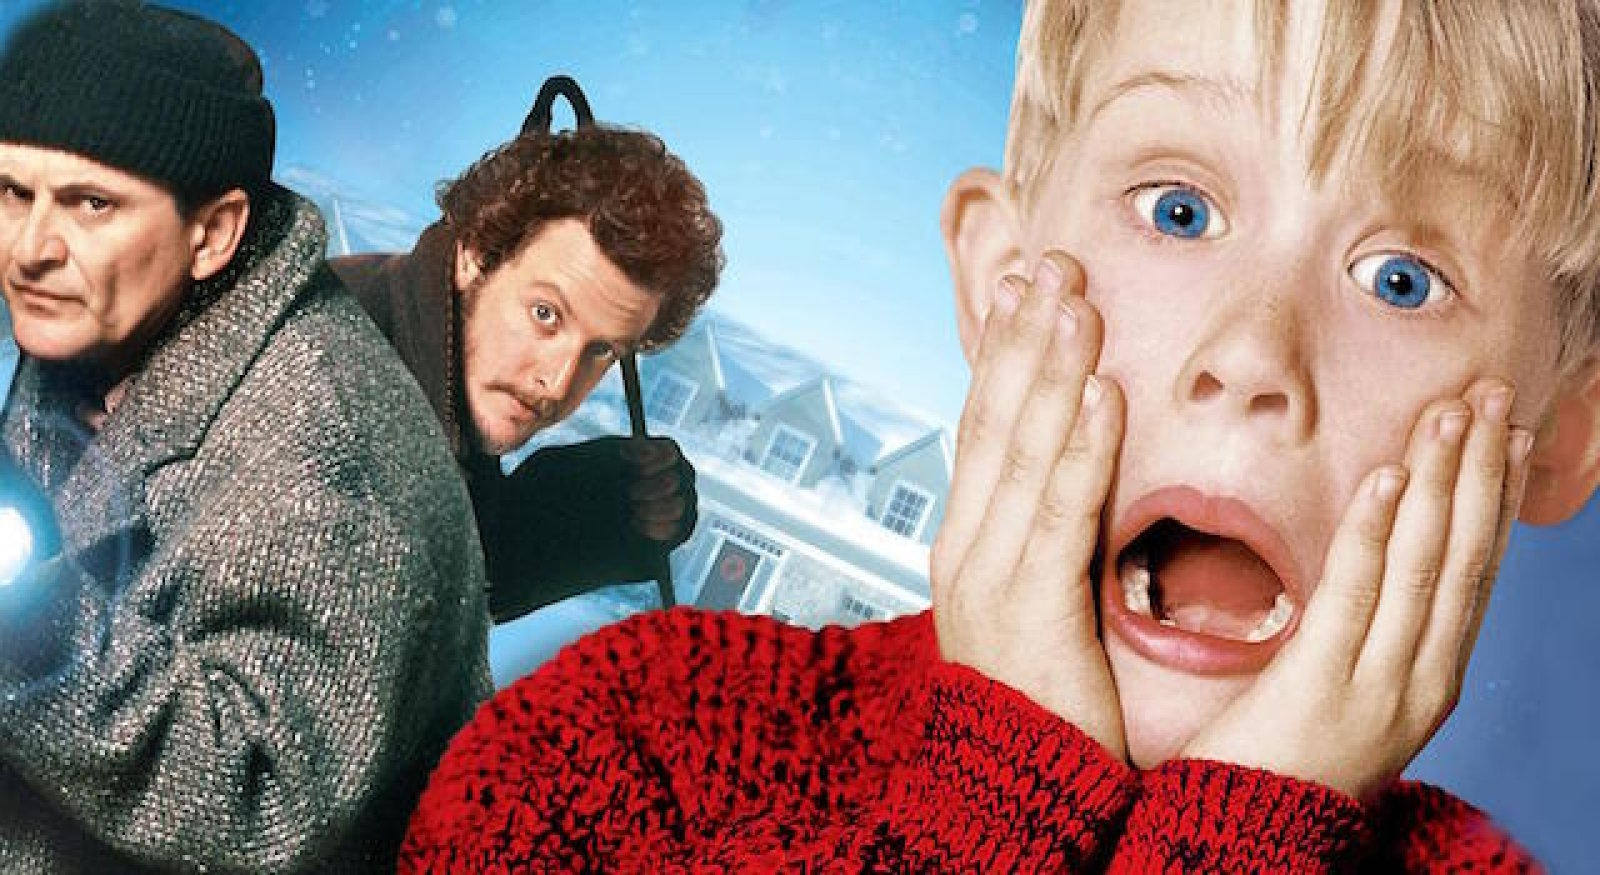 A 'Home Alone' reboot is coming to Disney+ | DeviceDaily.com